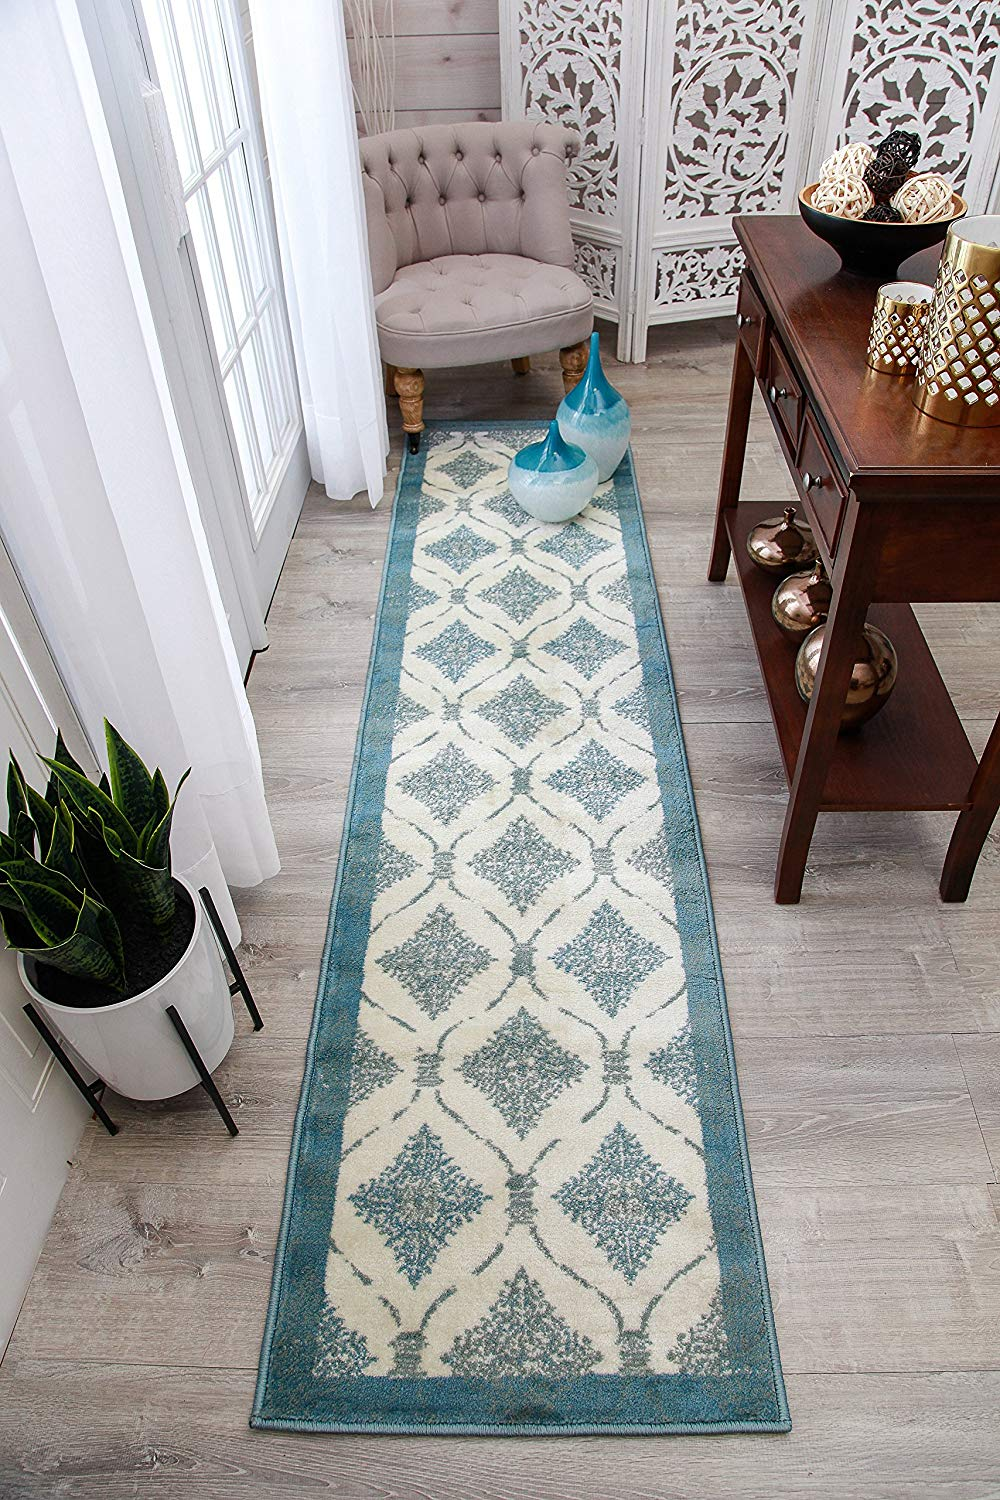 kitchen runner glass table and chairs cheap hallway rug runners find deals on line at get quotations modern blue 2x8 white rugs cream black gray 2x7 narrow